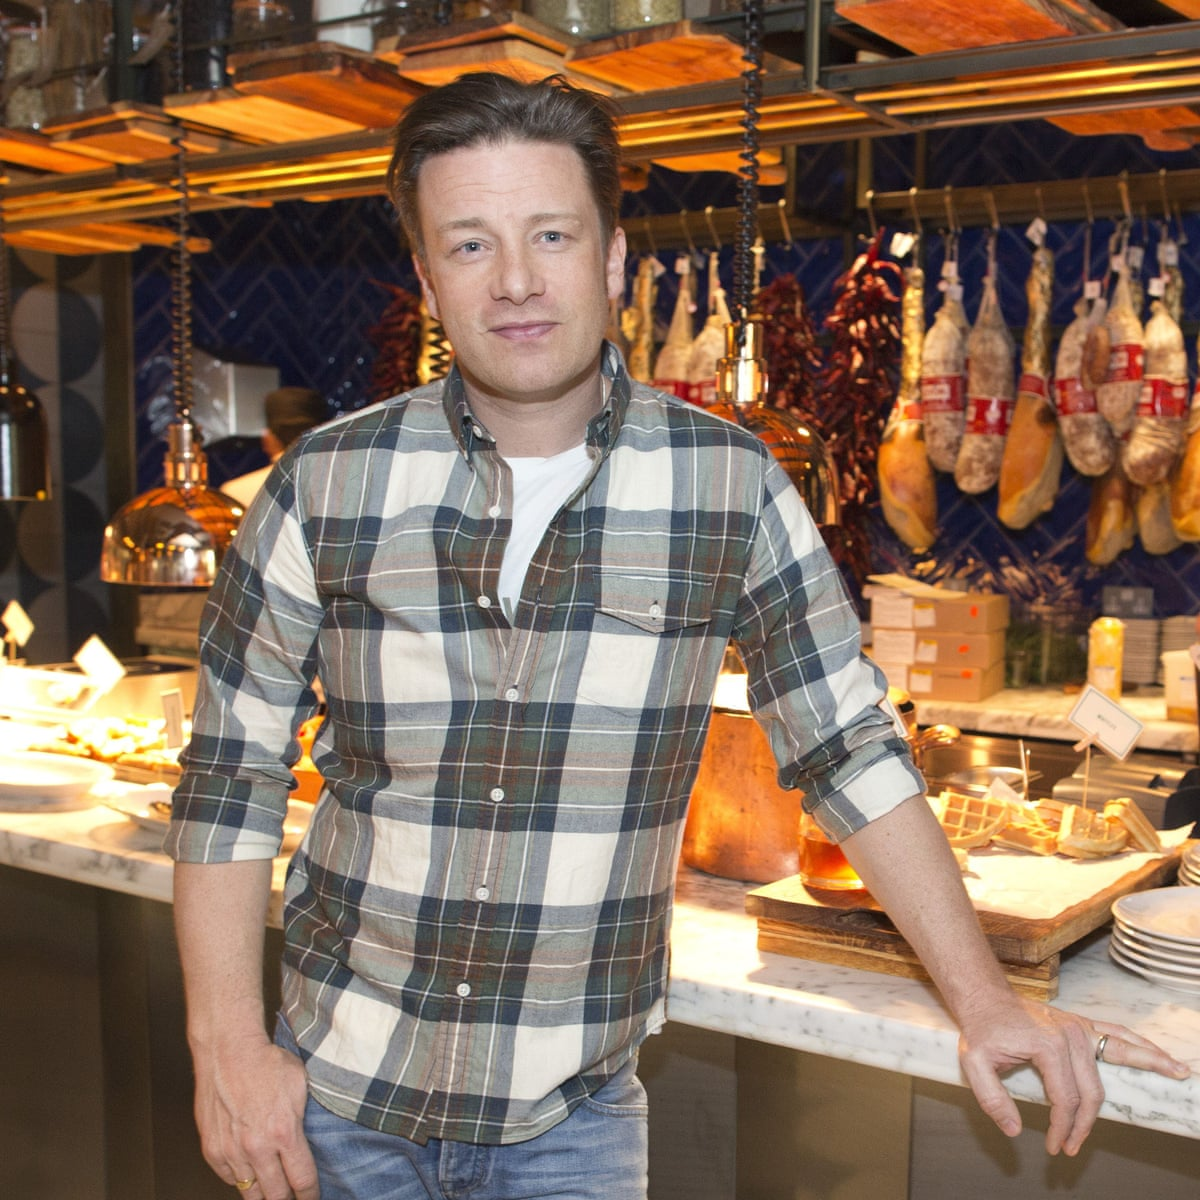 Jamie Oliver S Paella Brings Fractured Spain Together Against Him Spain The Guardian